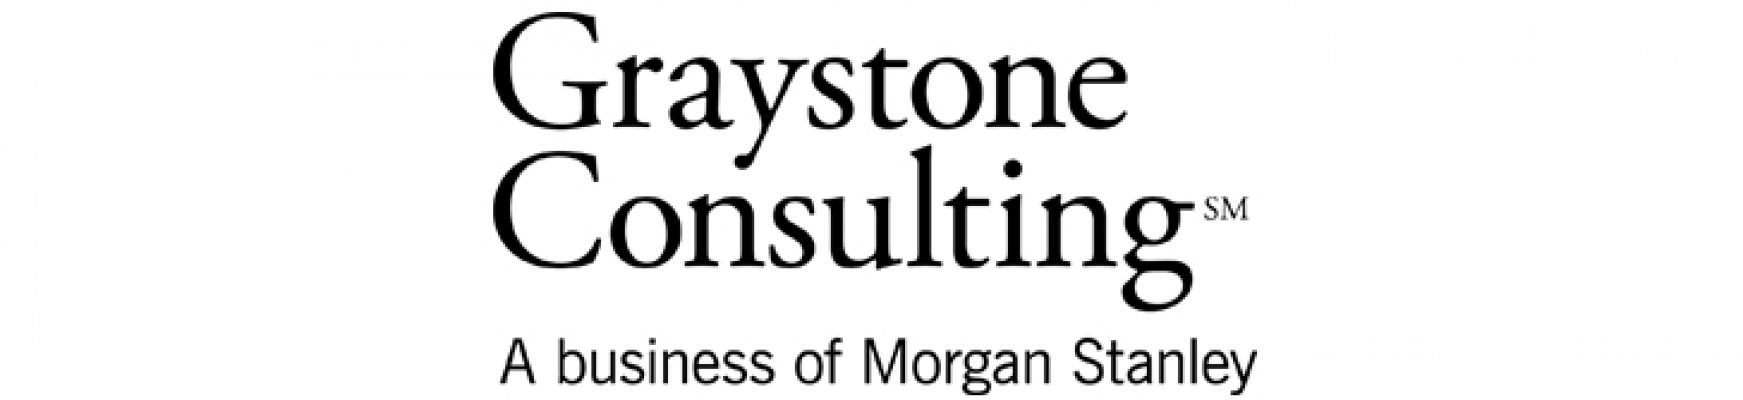 Graystone-Consulting-Logo